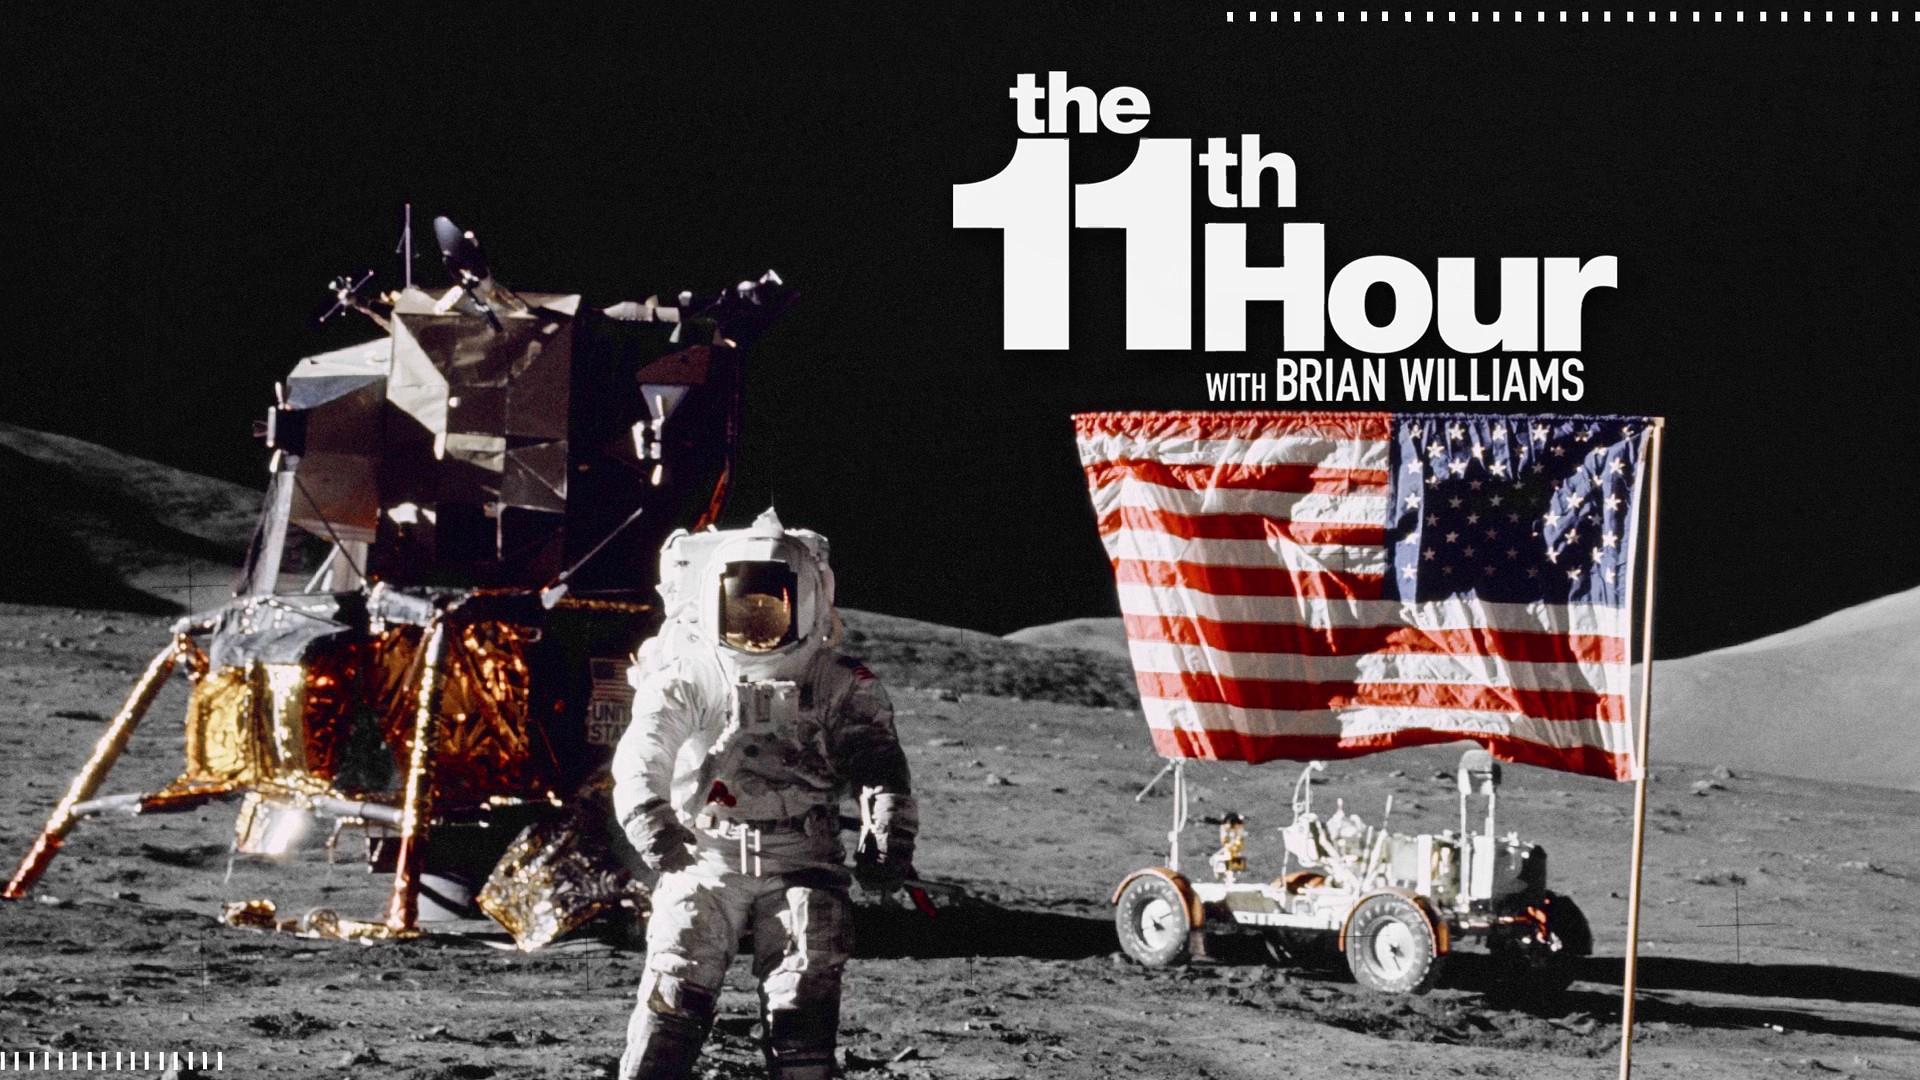 It's been 45 years since humans walked on the moon